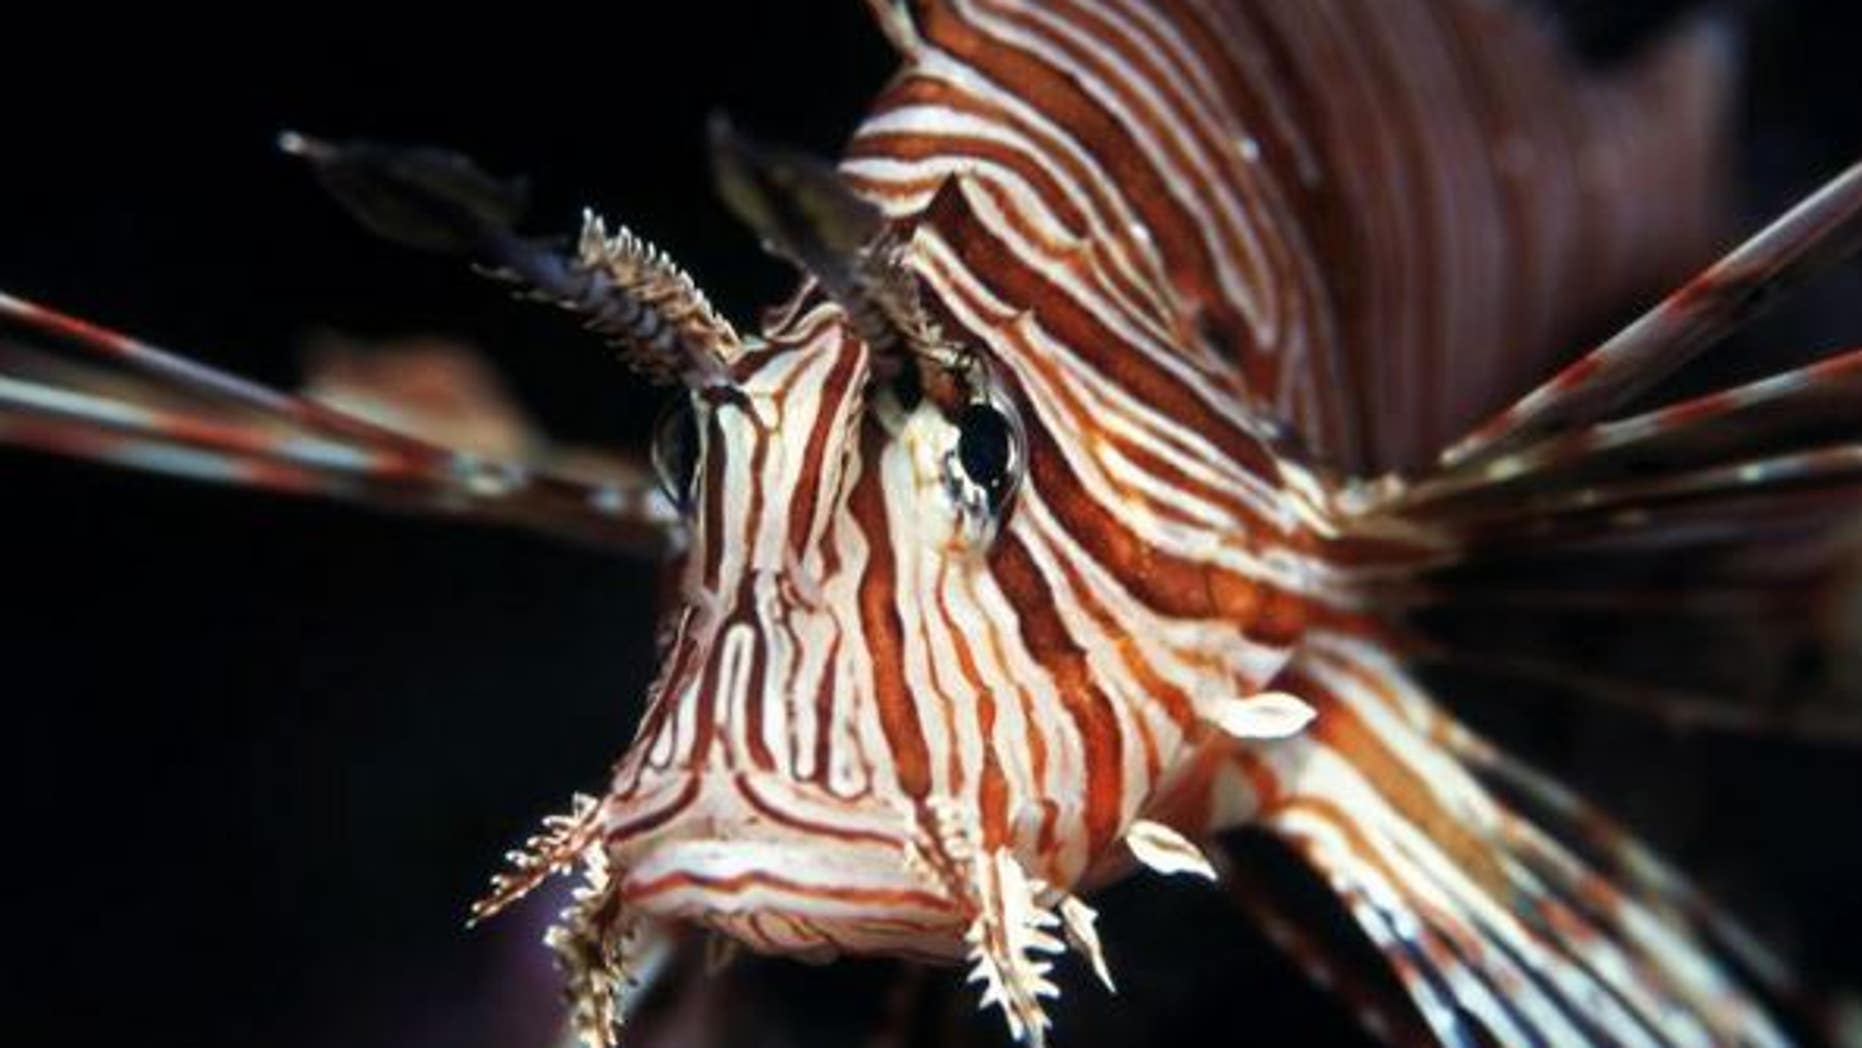 Westlake Legal Group lionfish-shutterstock The voracious and invasive lionfish is taking over the Atlantic. Here's why. LiveScience Grant Currin fox-news/science/wild-nature/fish fnc/science fnc cbe02811-3939-50e0-9e8b-15d6ef3eb2ed article